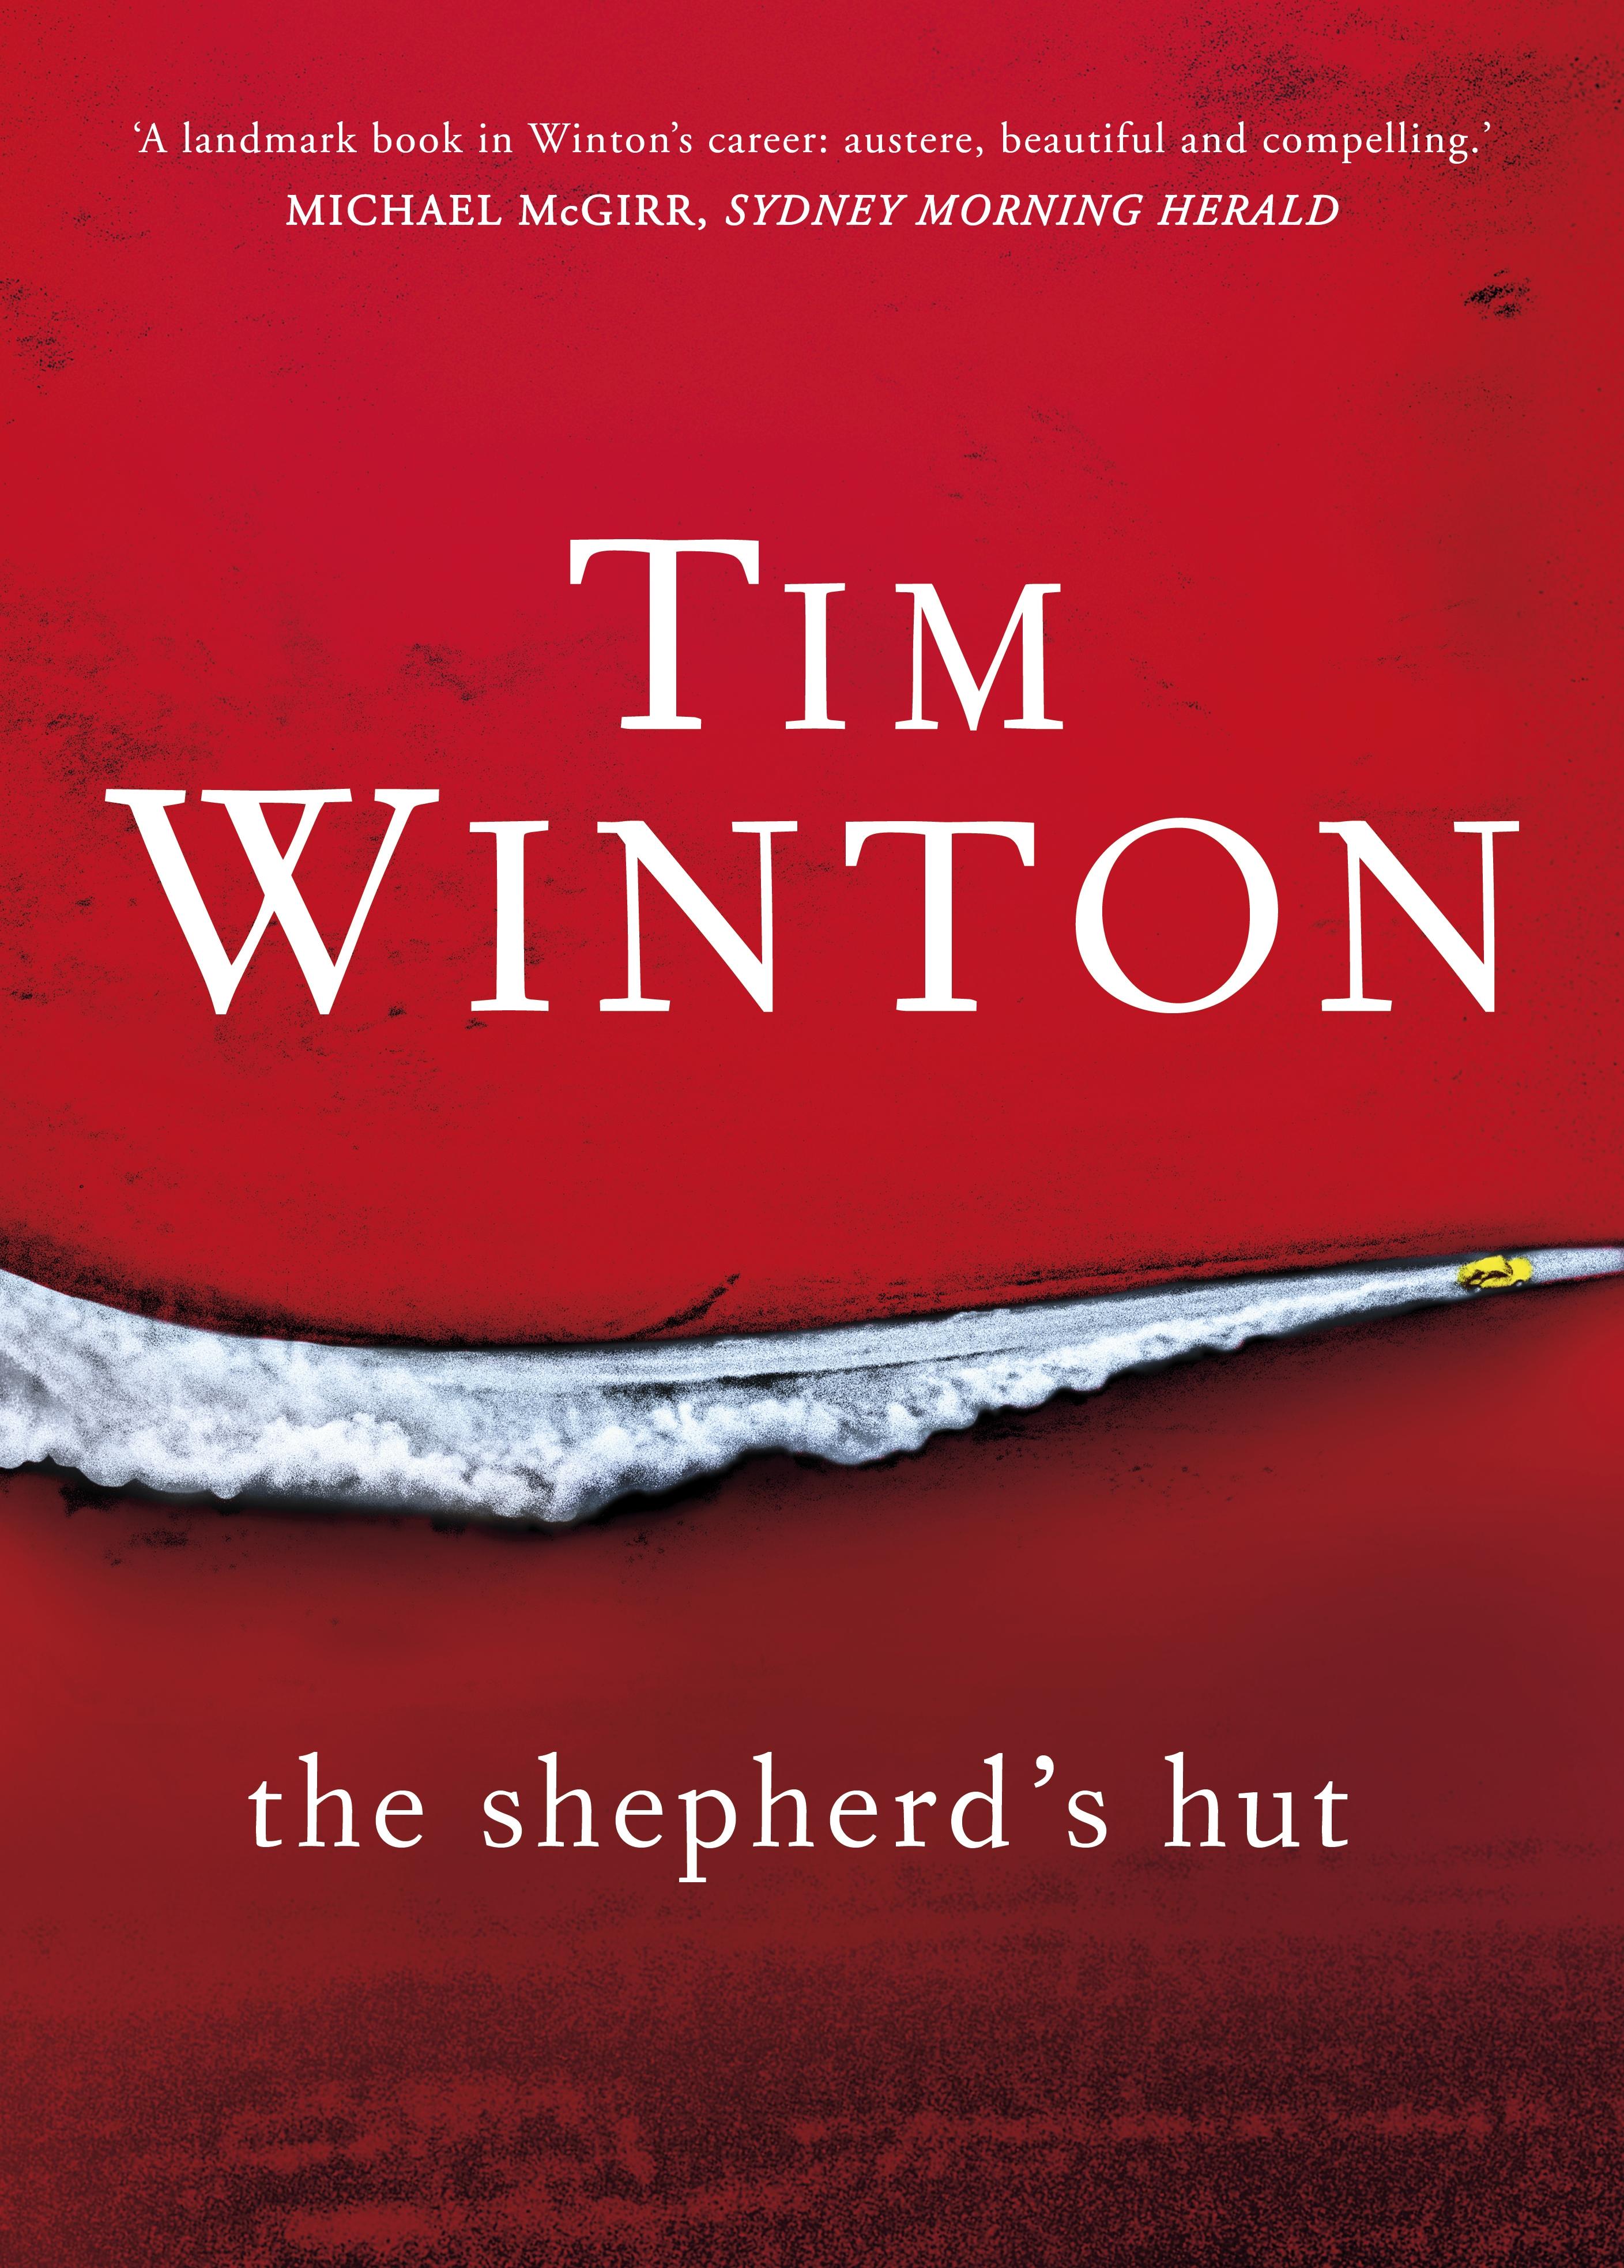 The Shepherd's Hut by Tim Winton, ISBN: 9780143786115